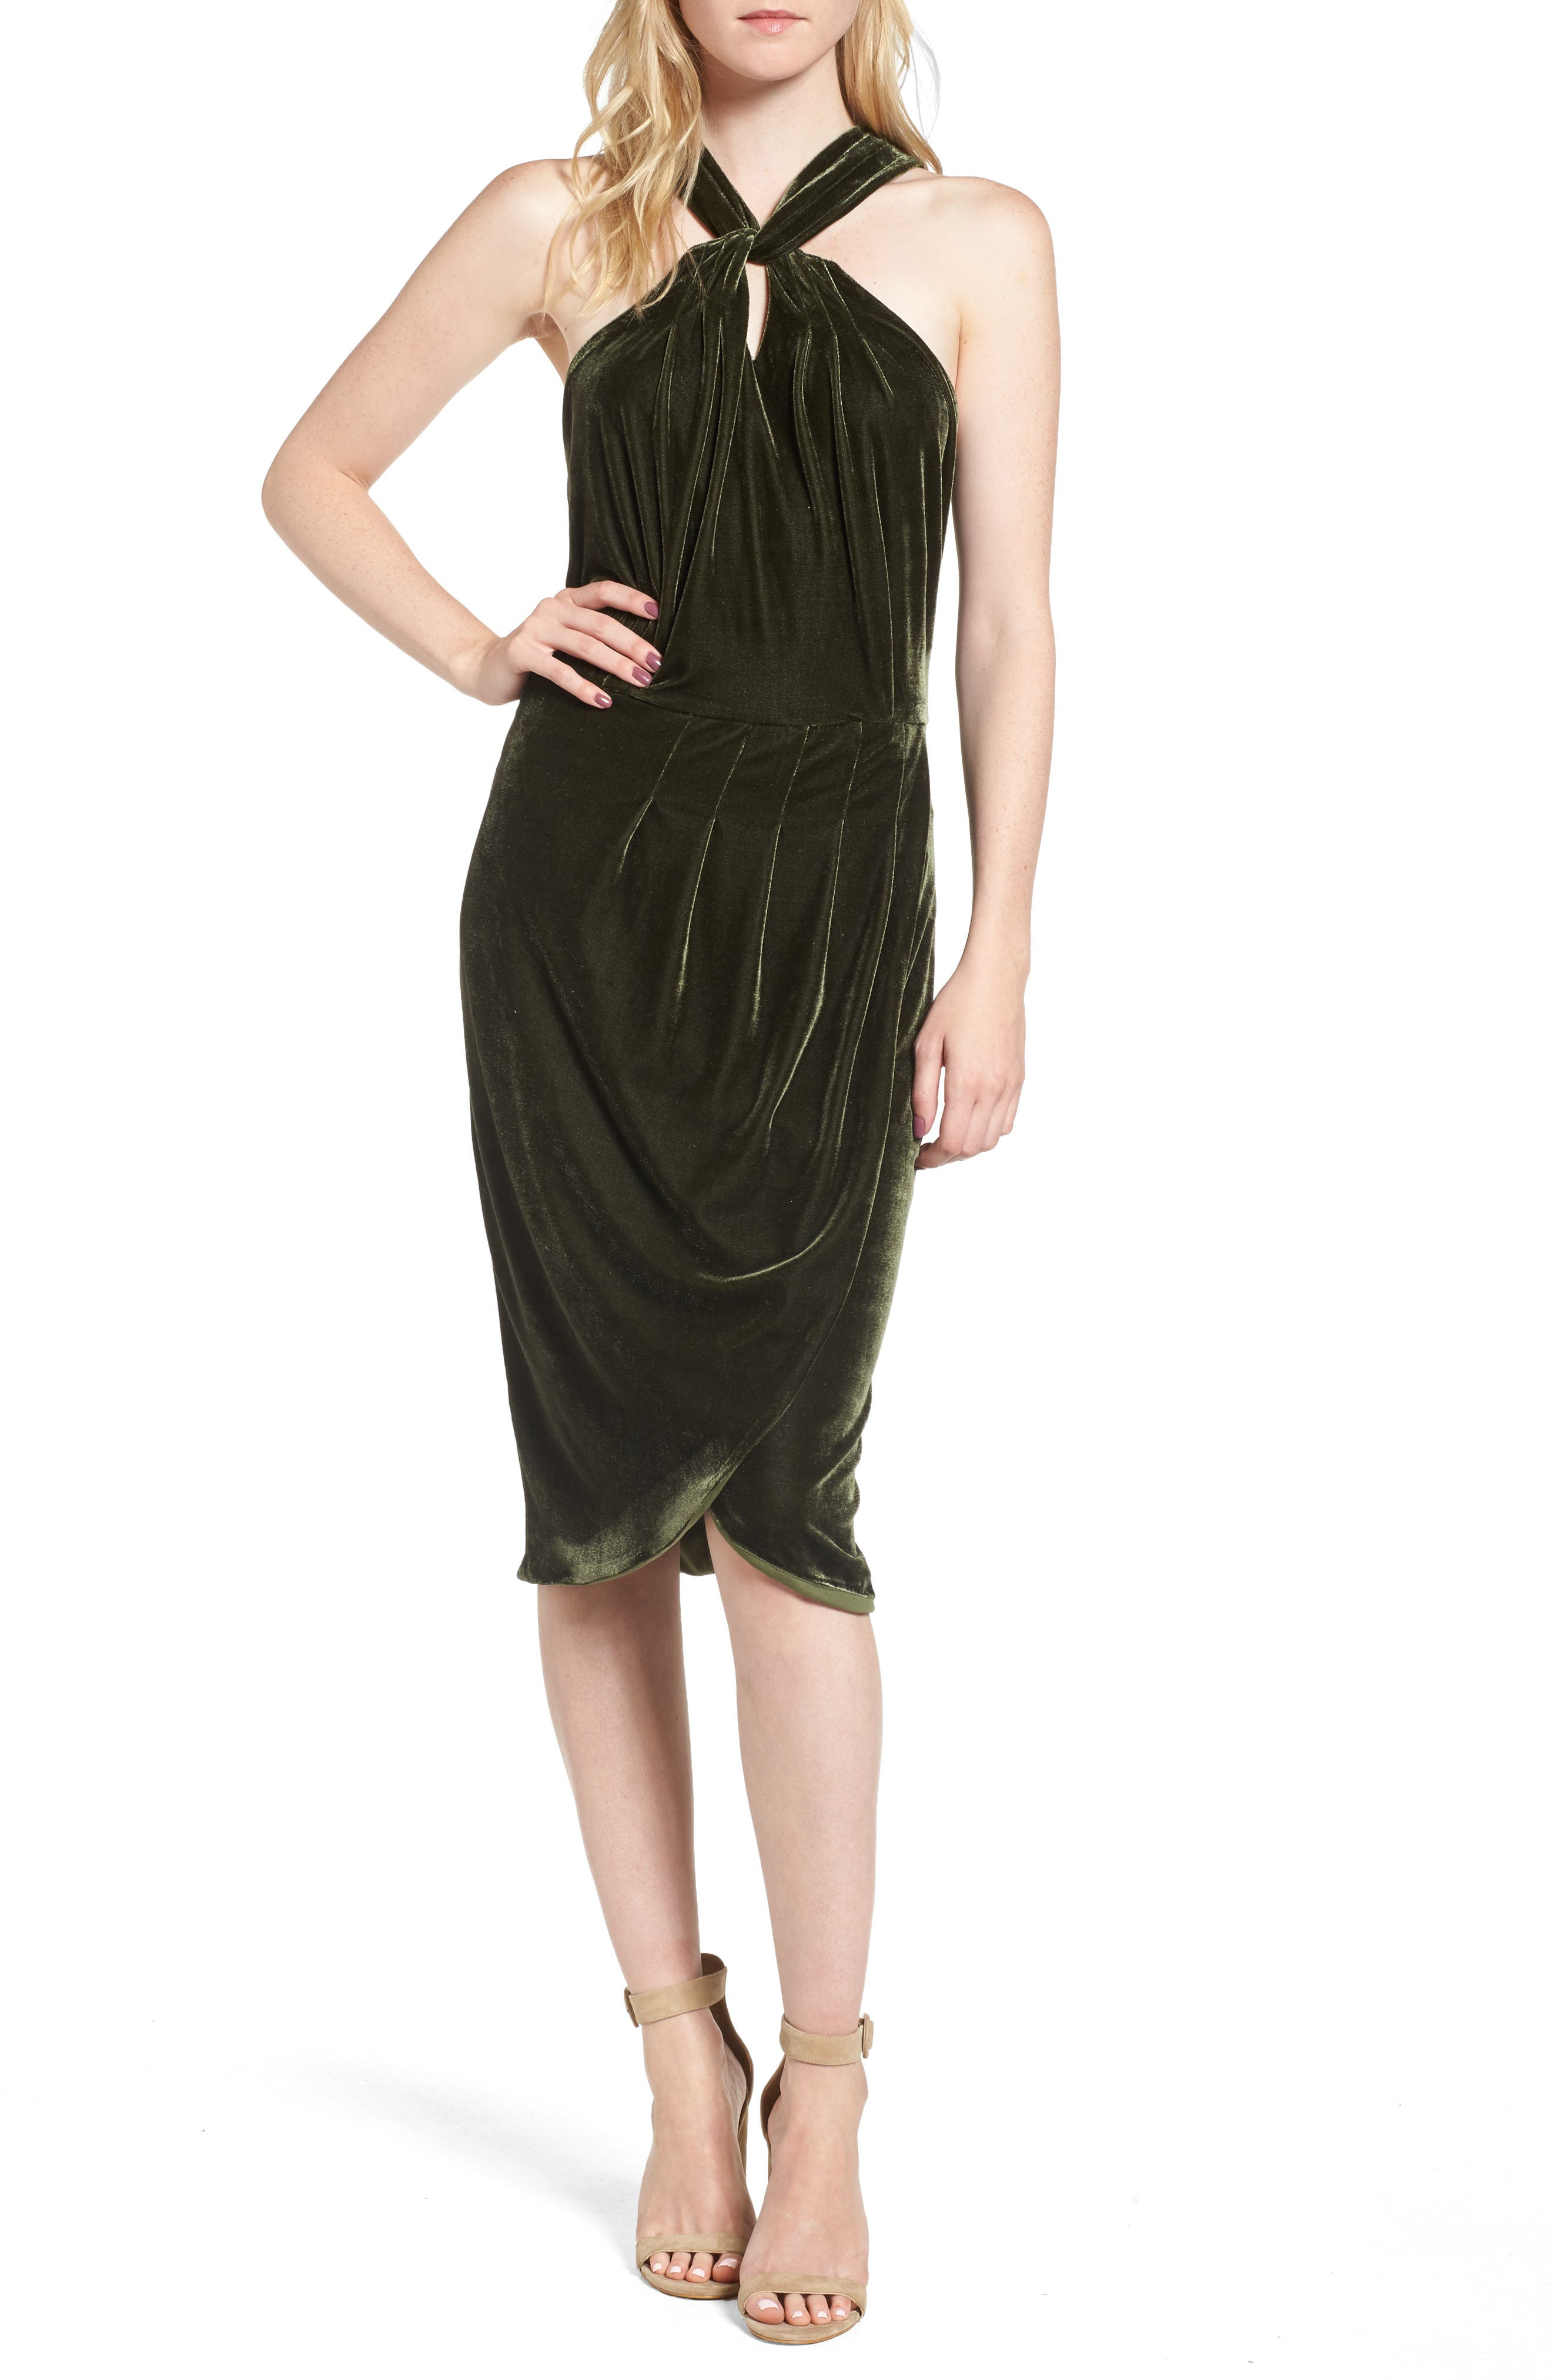 Wales Velvet Halter Dress,                             Main thumbnail 1, color,                             360